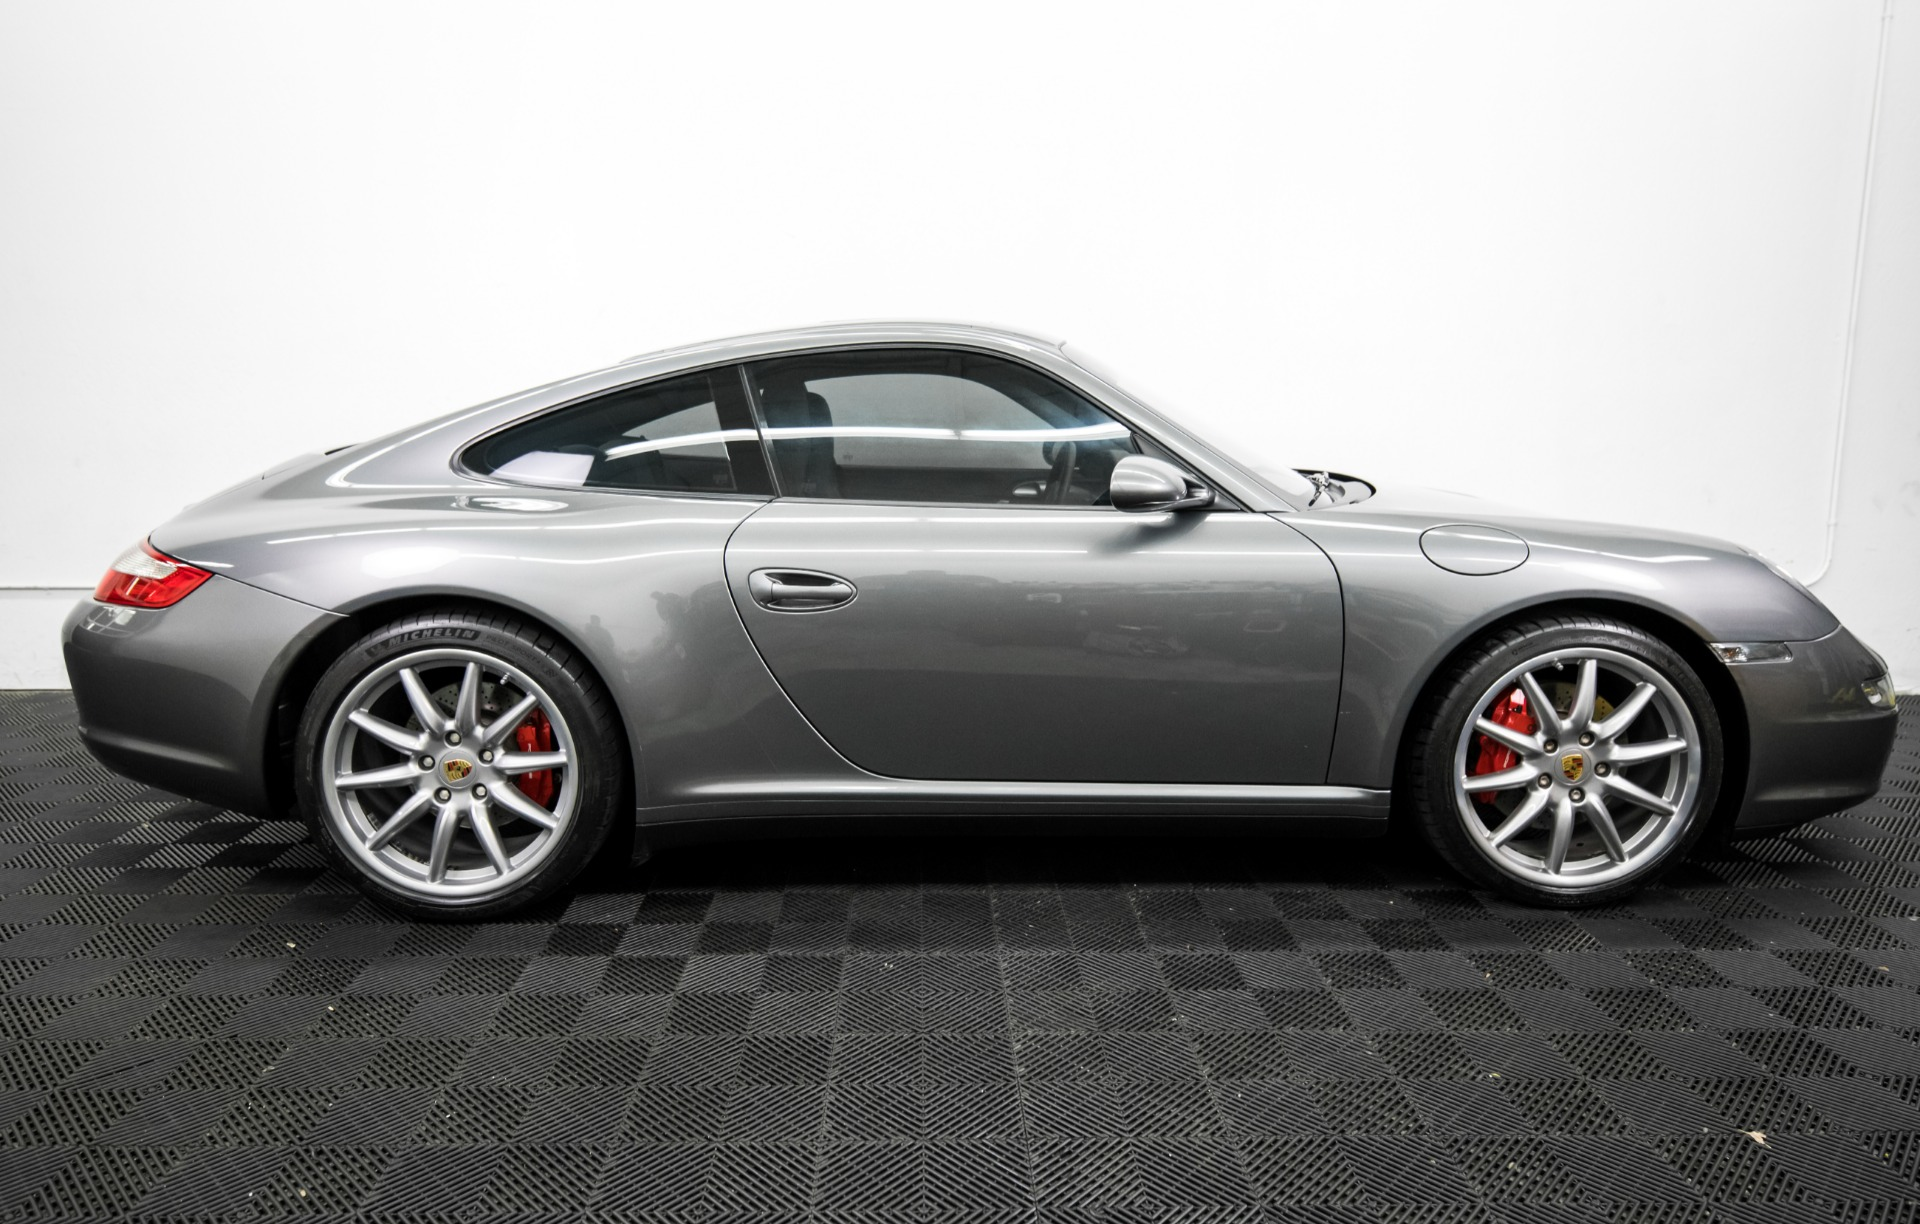 Used 2008 Porsche 911 Carrera 4S Used 2008 Porsche 911 Carrera 4S for sale $48,999 at Response Motors in Mountain View CA 4